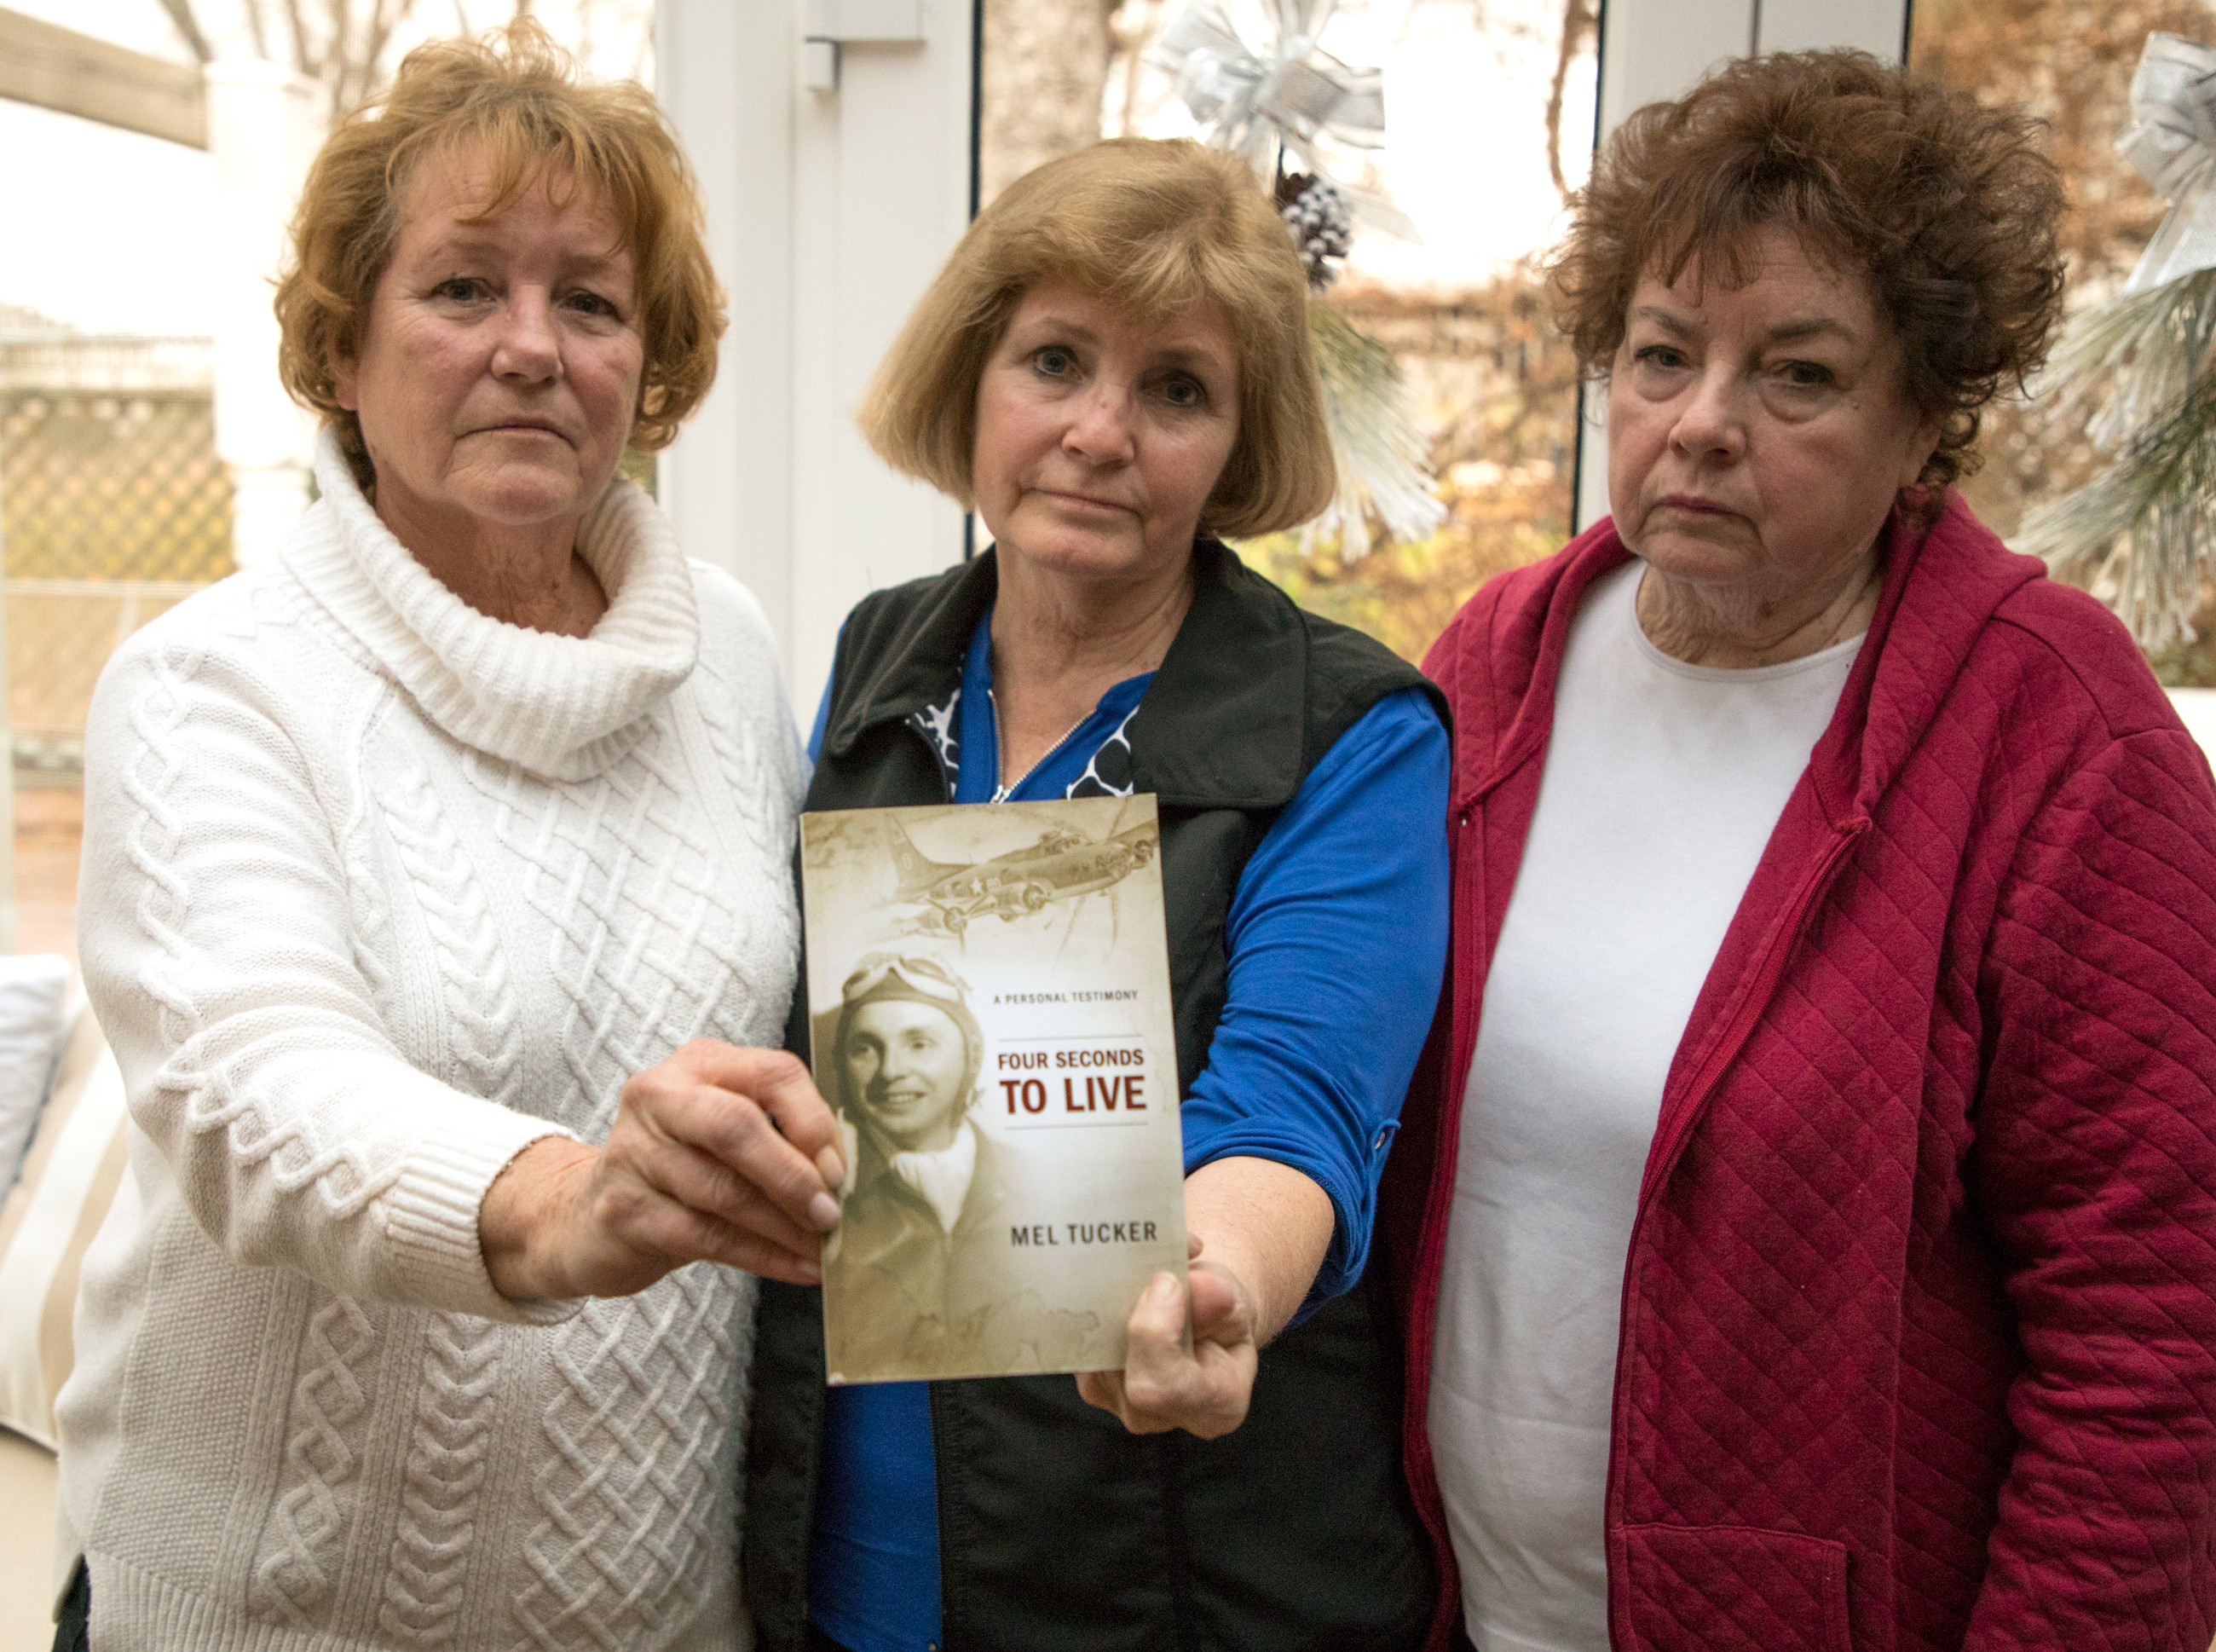 The daughters of former World War II Army veteran Melvin Tucker — Diane McHatton, Barb Harrison, and Jeanne Smith — display their father's autobiography that outlined life as a prisoner of war. (Andrew Gill/WBEZ)